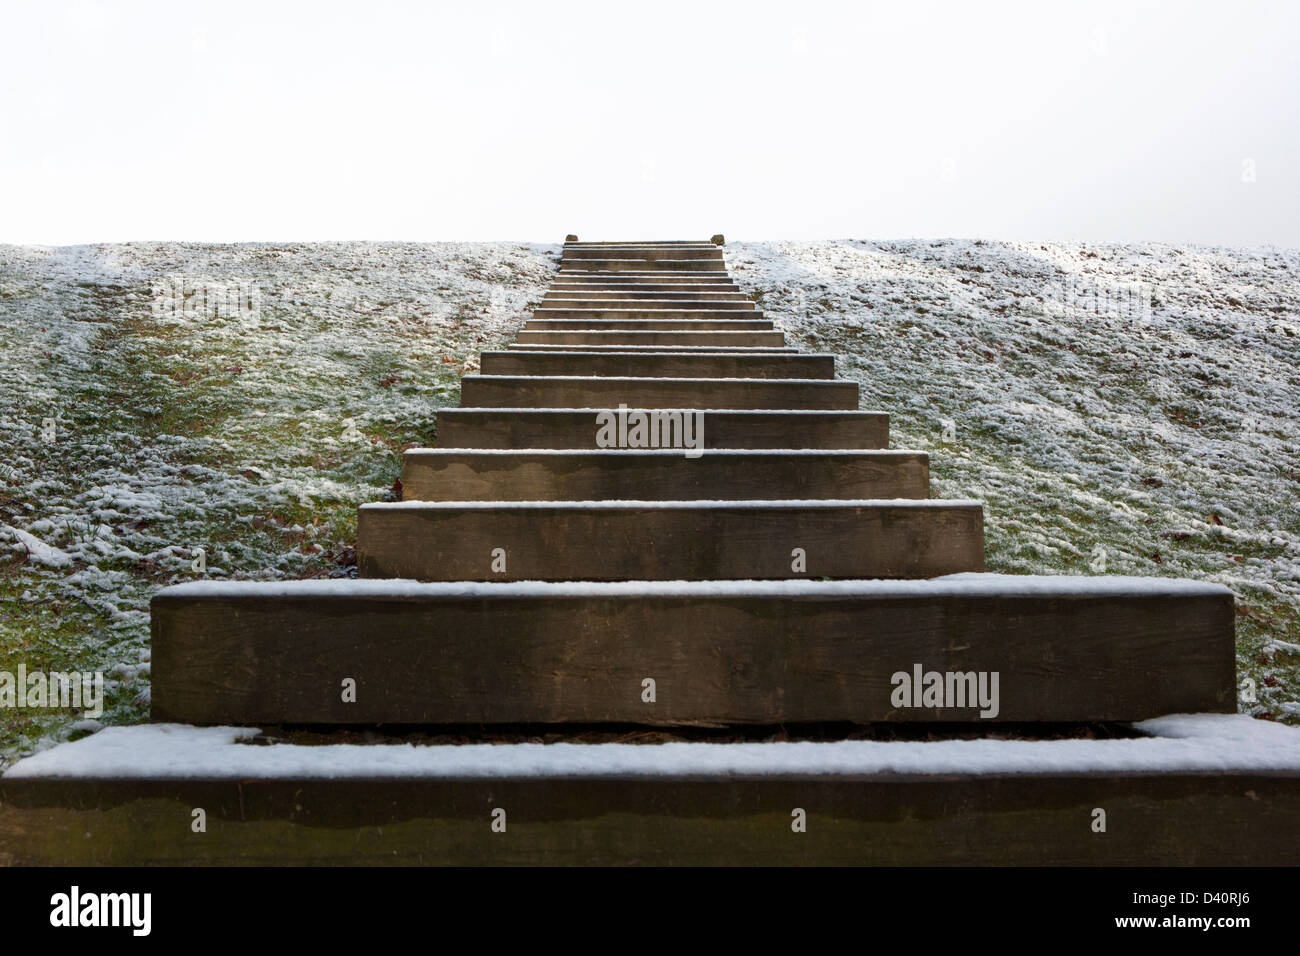 Staircase to Nowhere - Brevard, North Carolina - Stock Image